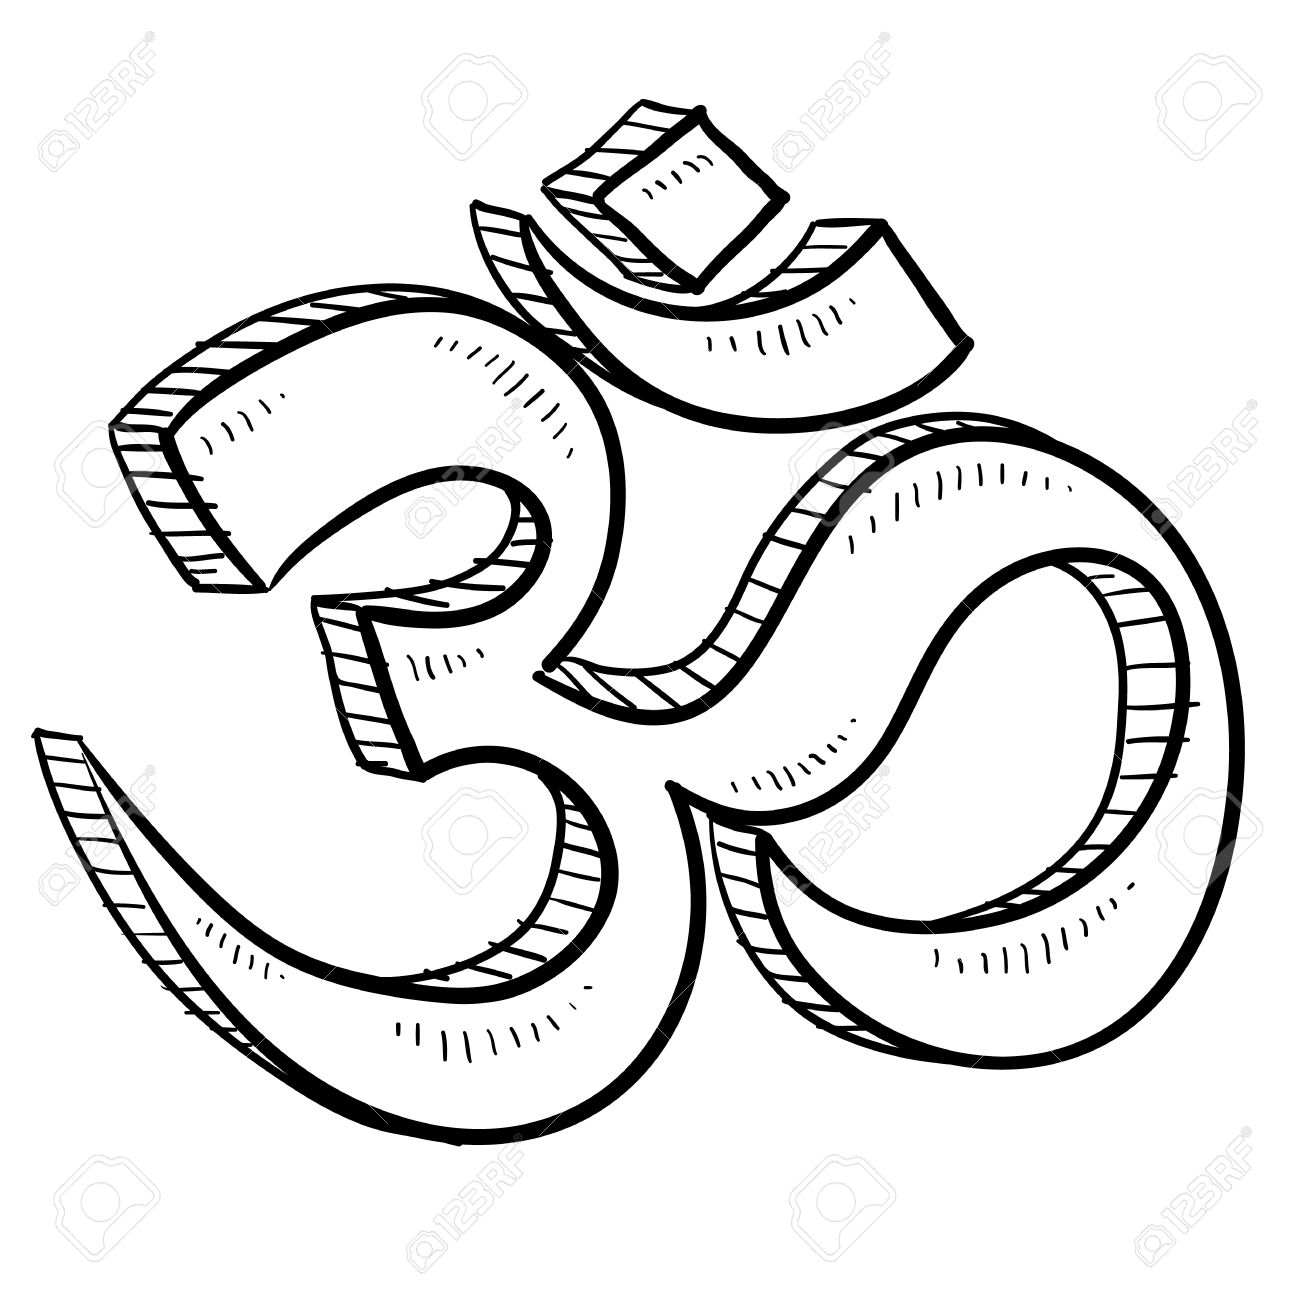 Doodle style hindu om or yoga symbol sketch in vector format royalty doodle style hindu om or yoga symbol sketch in vector format stock vector 14420434 biocorpaavc Choice Image